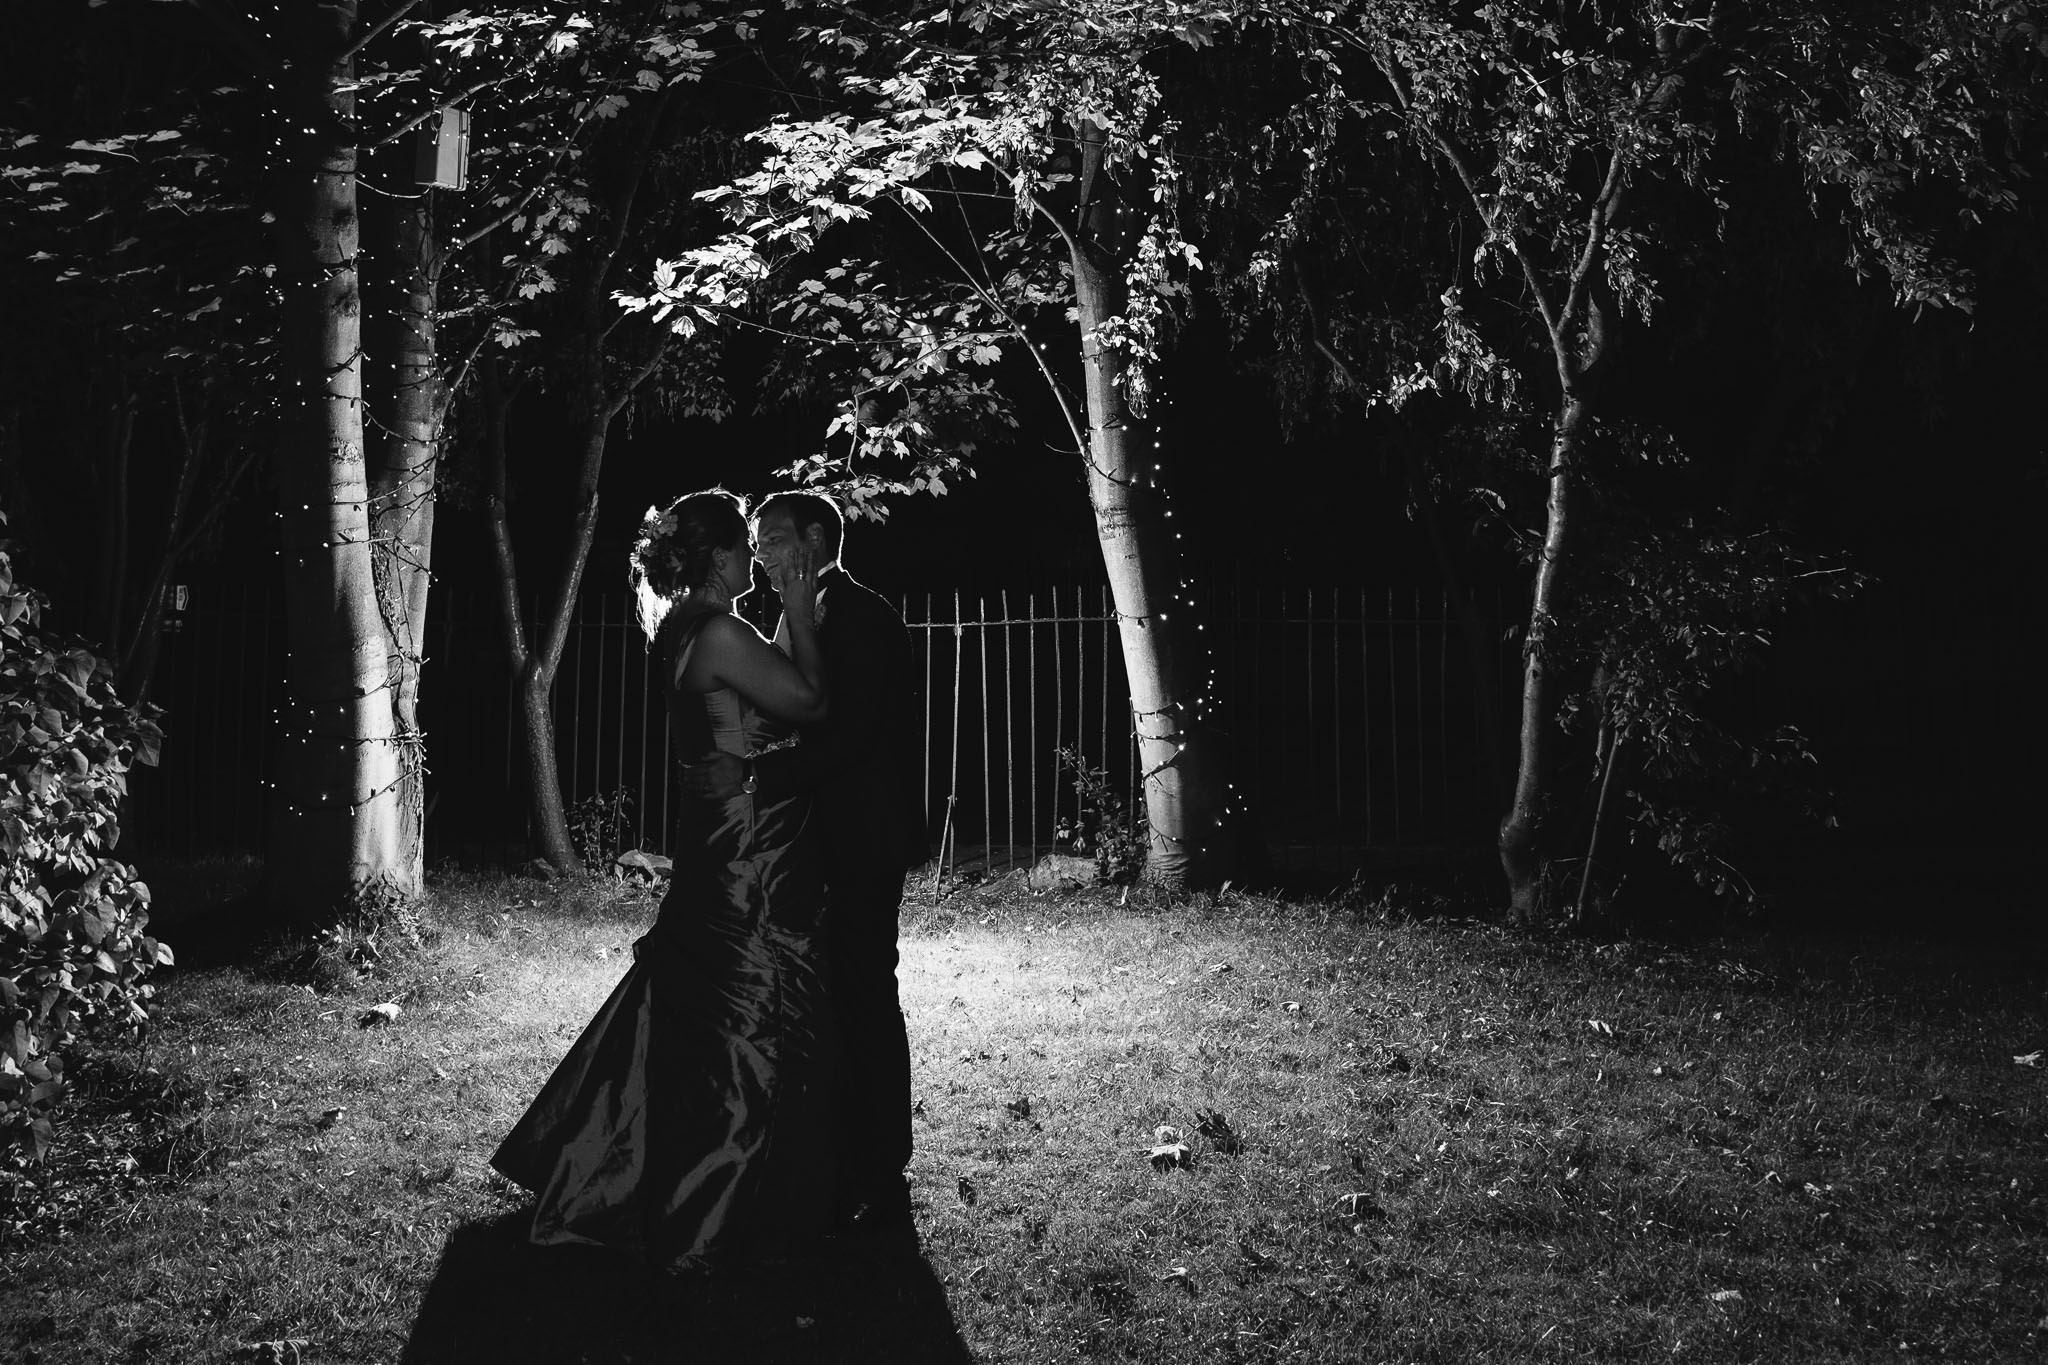 A romantic black and white photo of the bride and groom embracing in the grounds of Wylam Institute at night